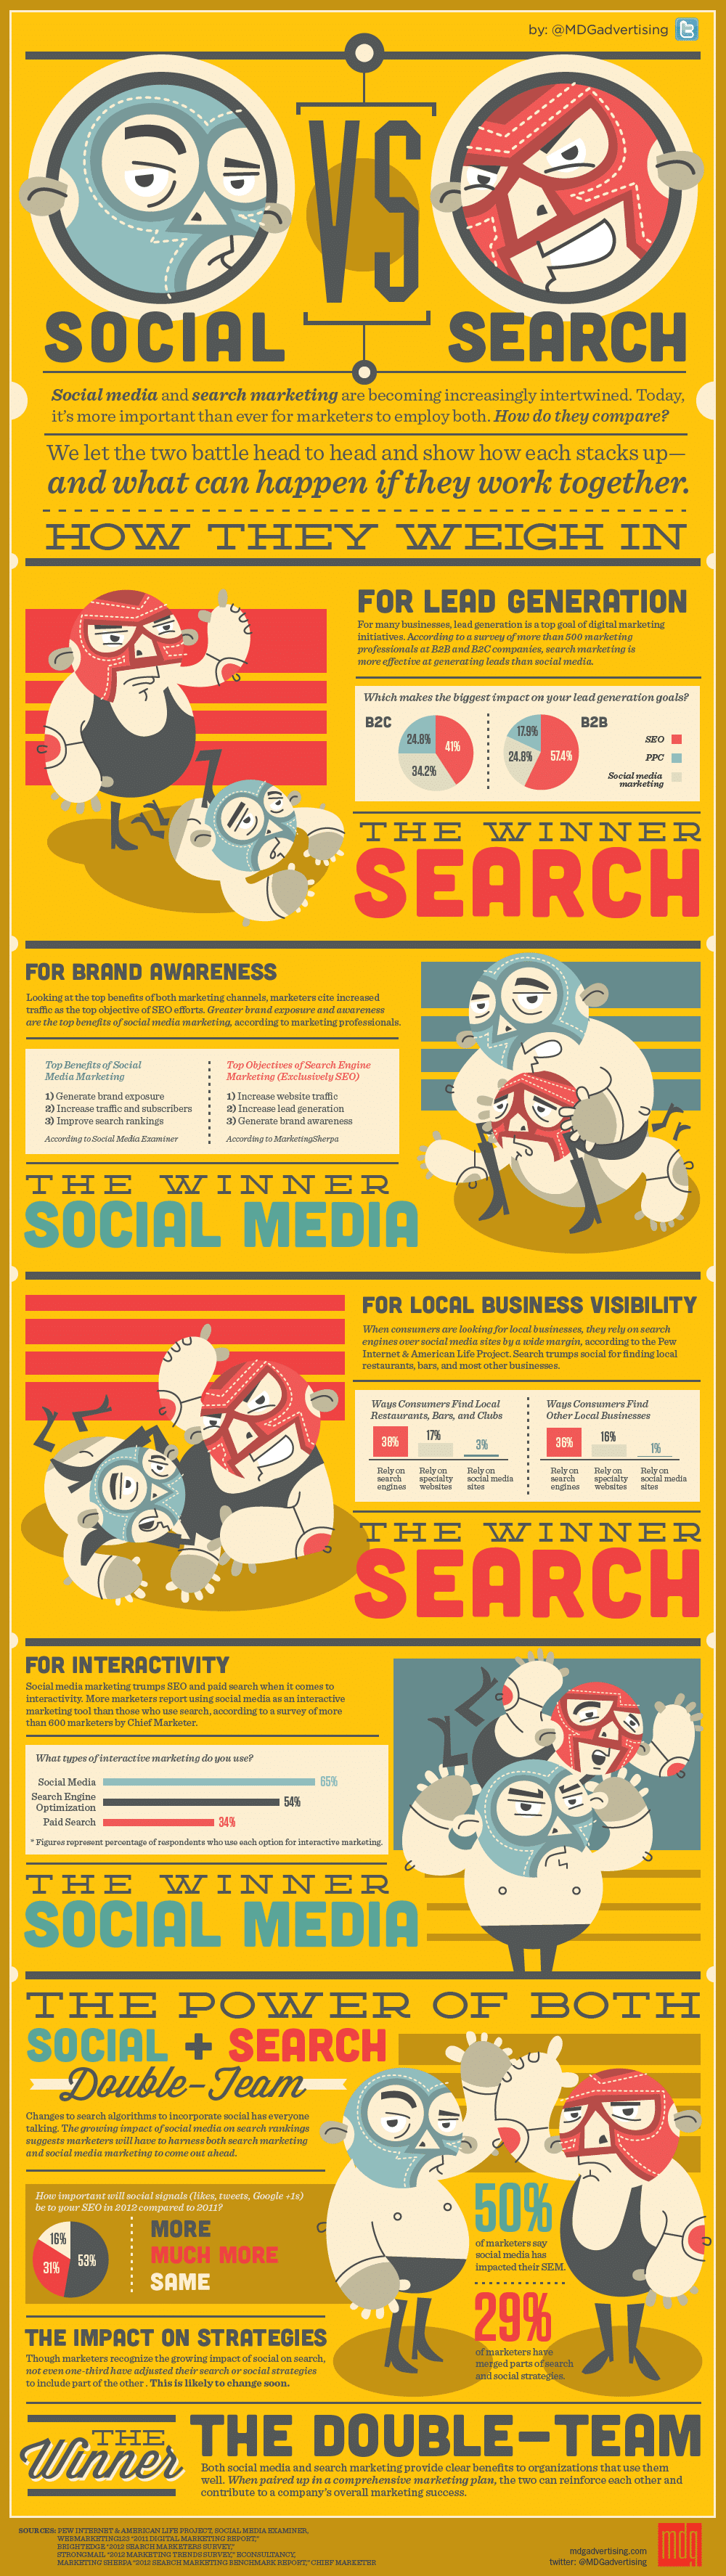 social-vs-search-marketing